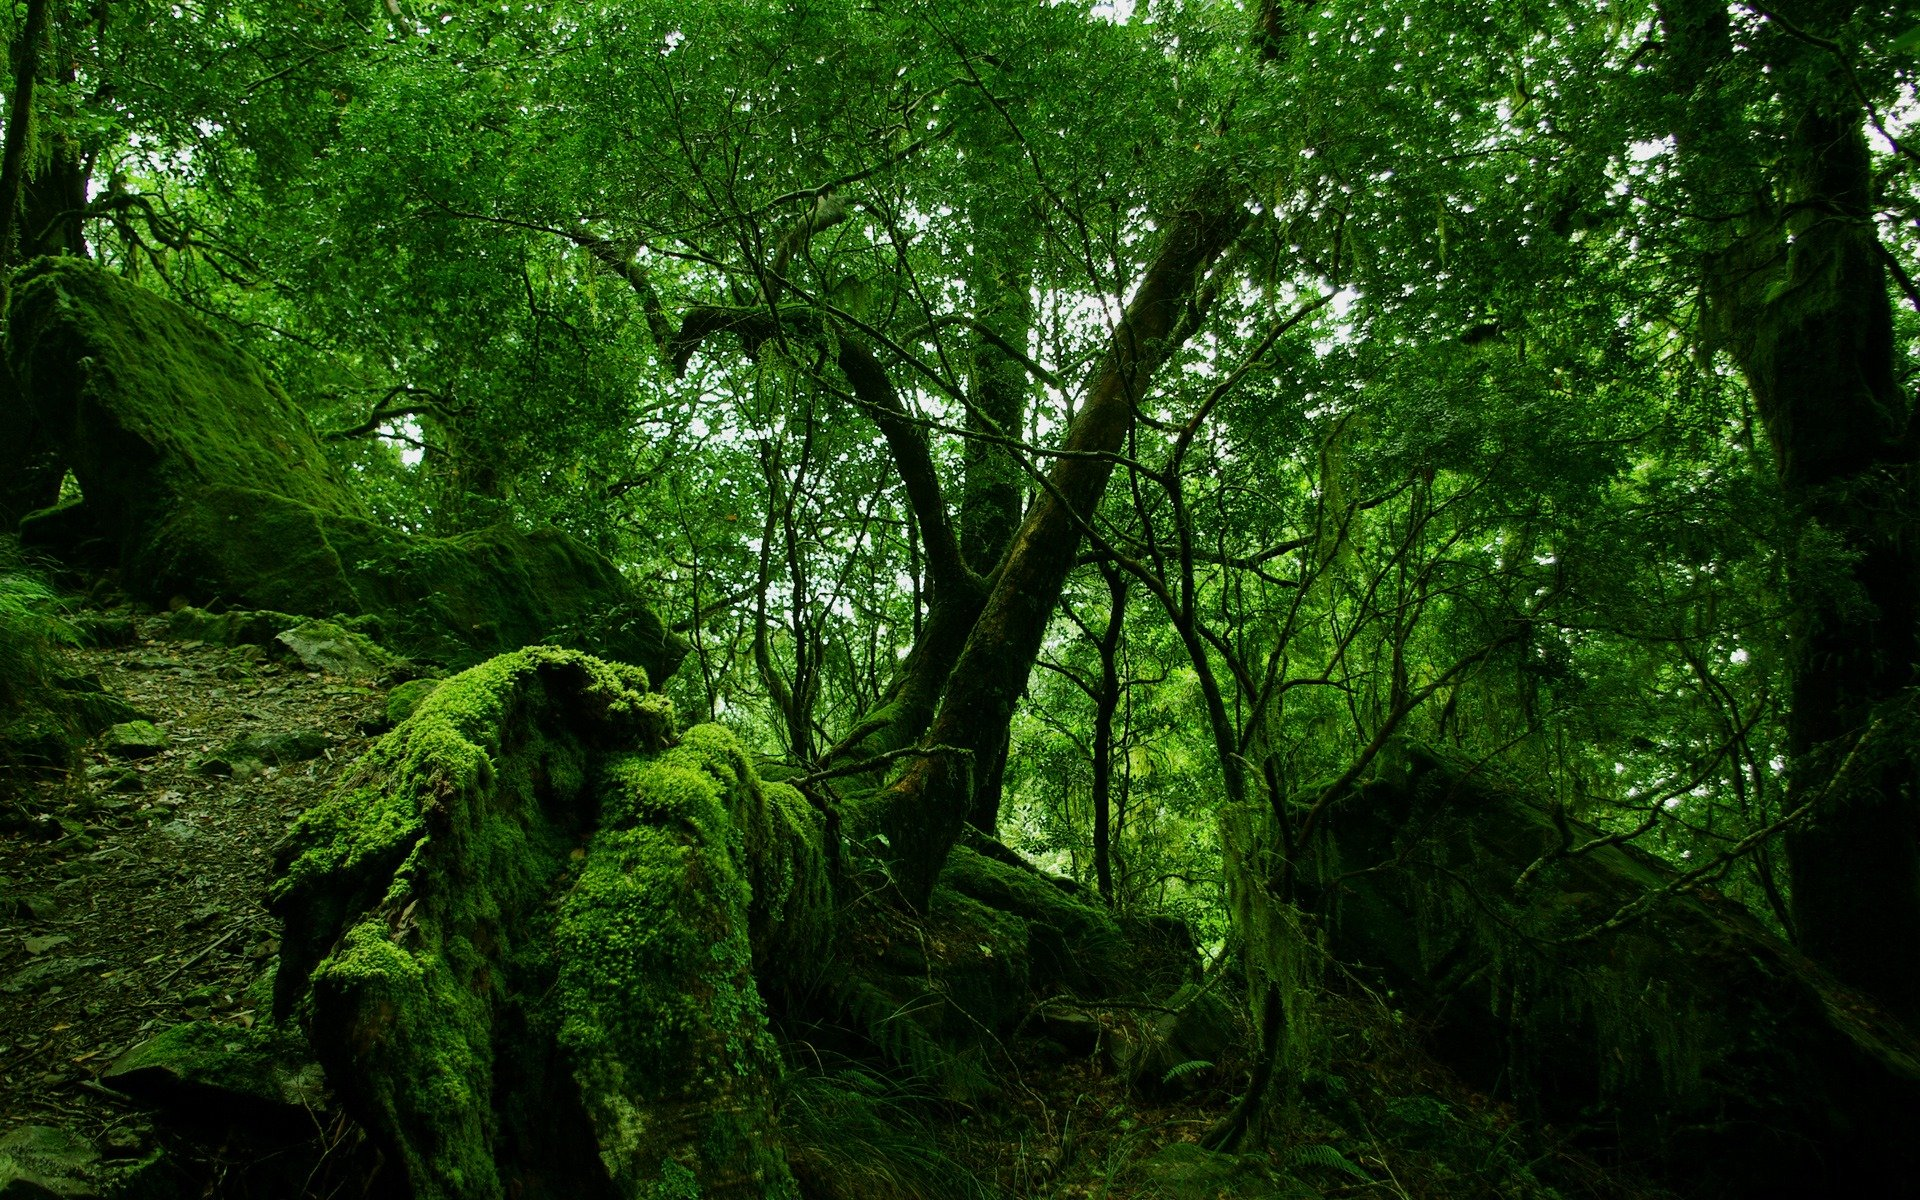 rainforest images hd